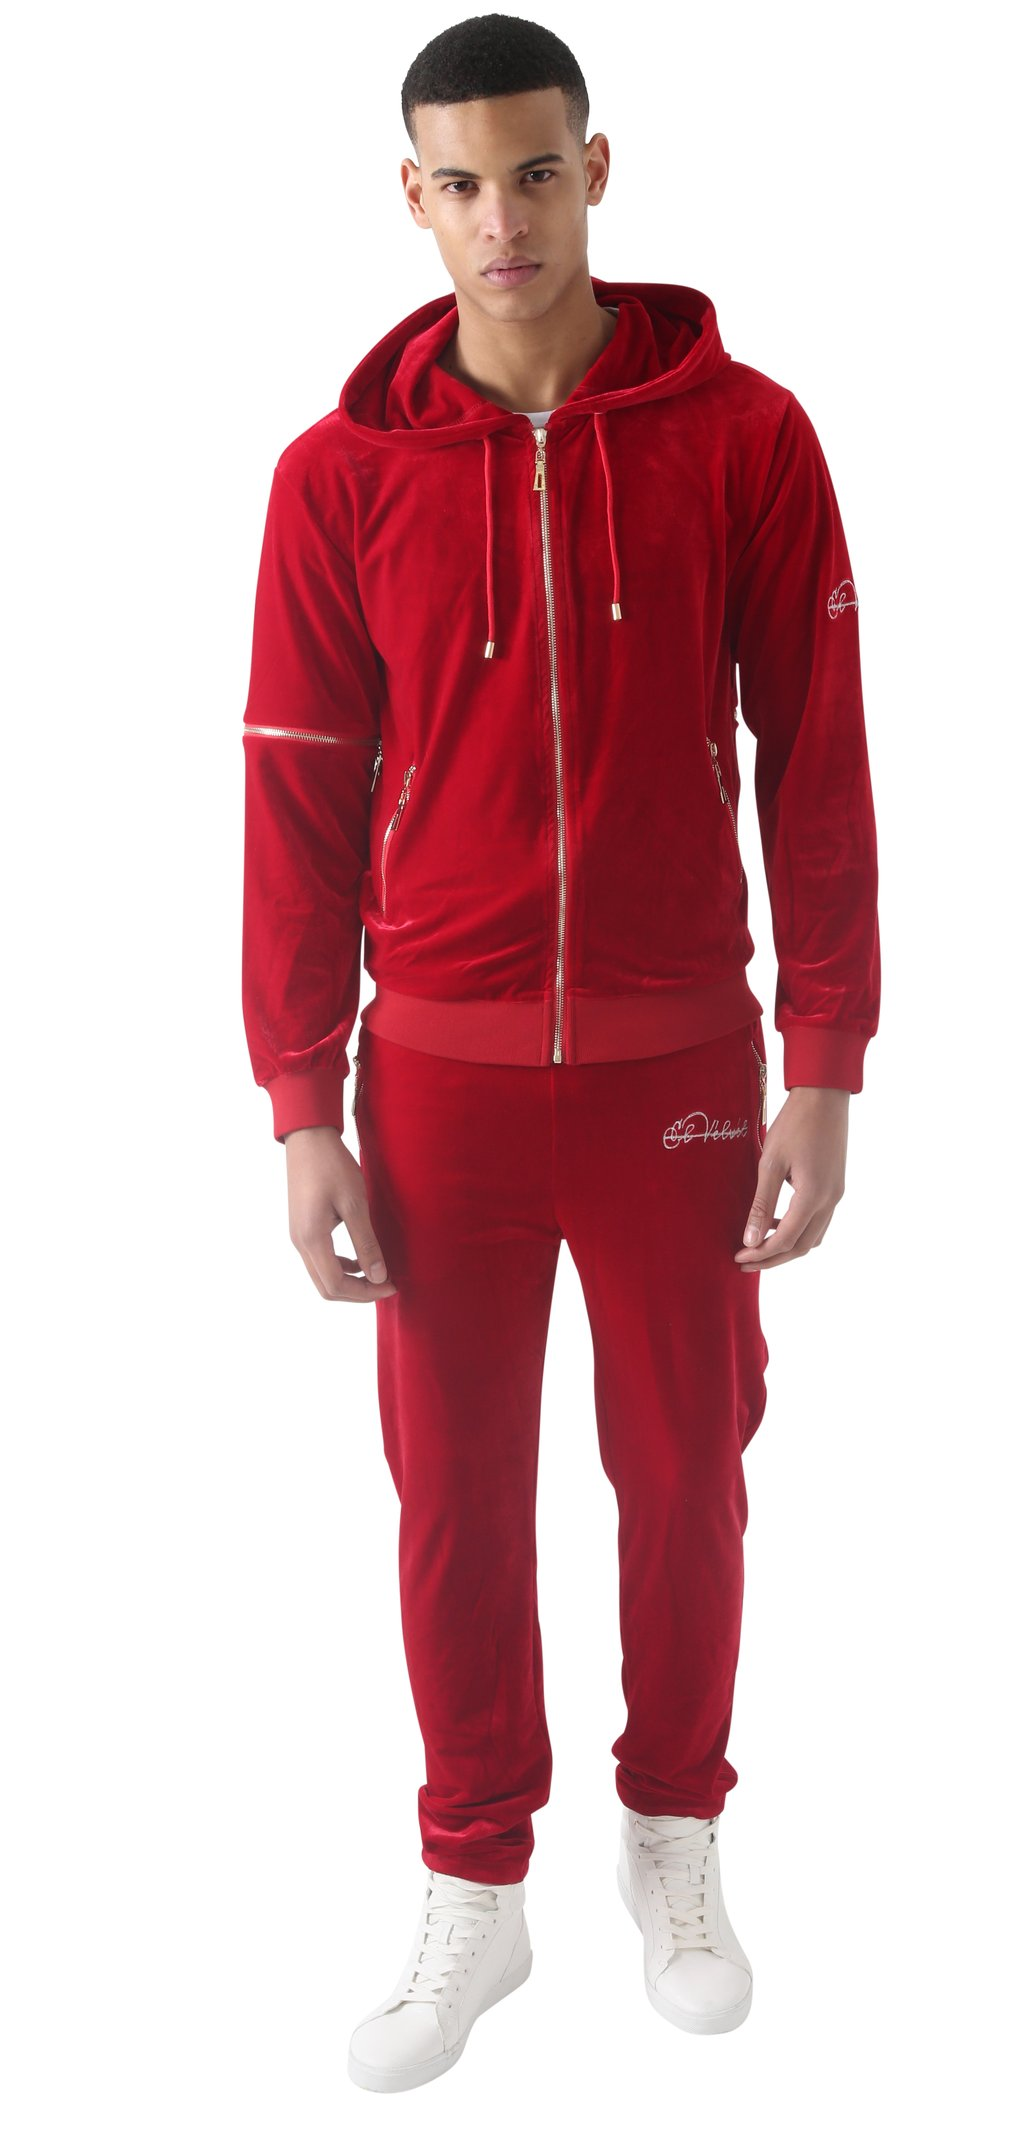 Velour tracksuit clipart image royalty free library El Vélvét | Luxury Clothing image royalty free library